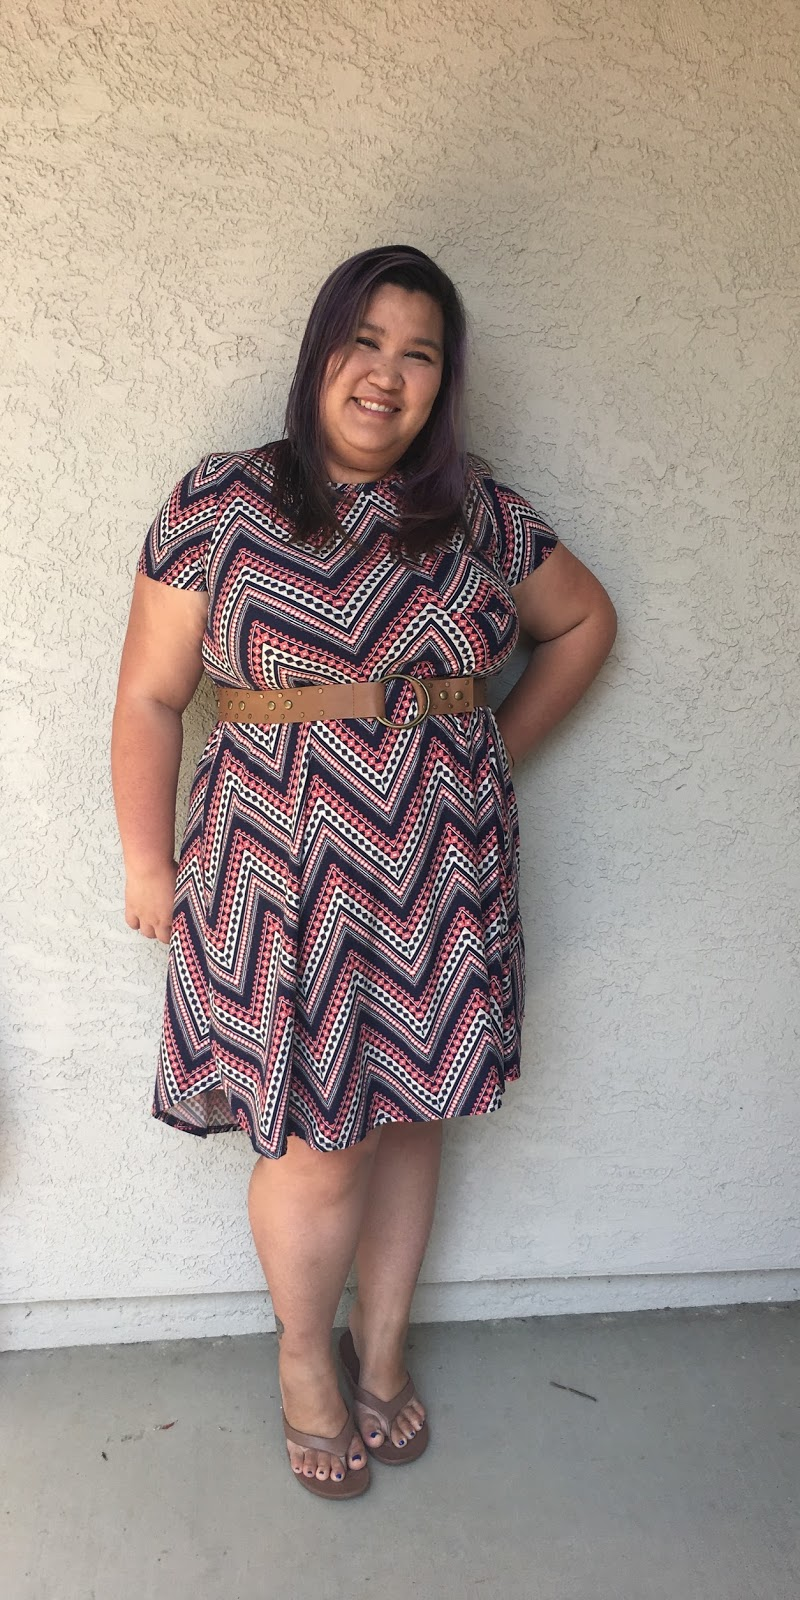 b250e0a975f The sizing of this dress is going to depend on what look you re going for  if you like things tighter get a smaller size